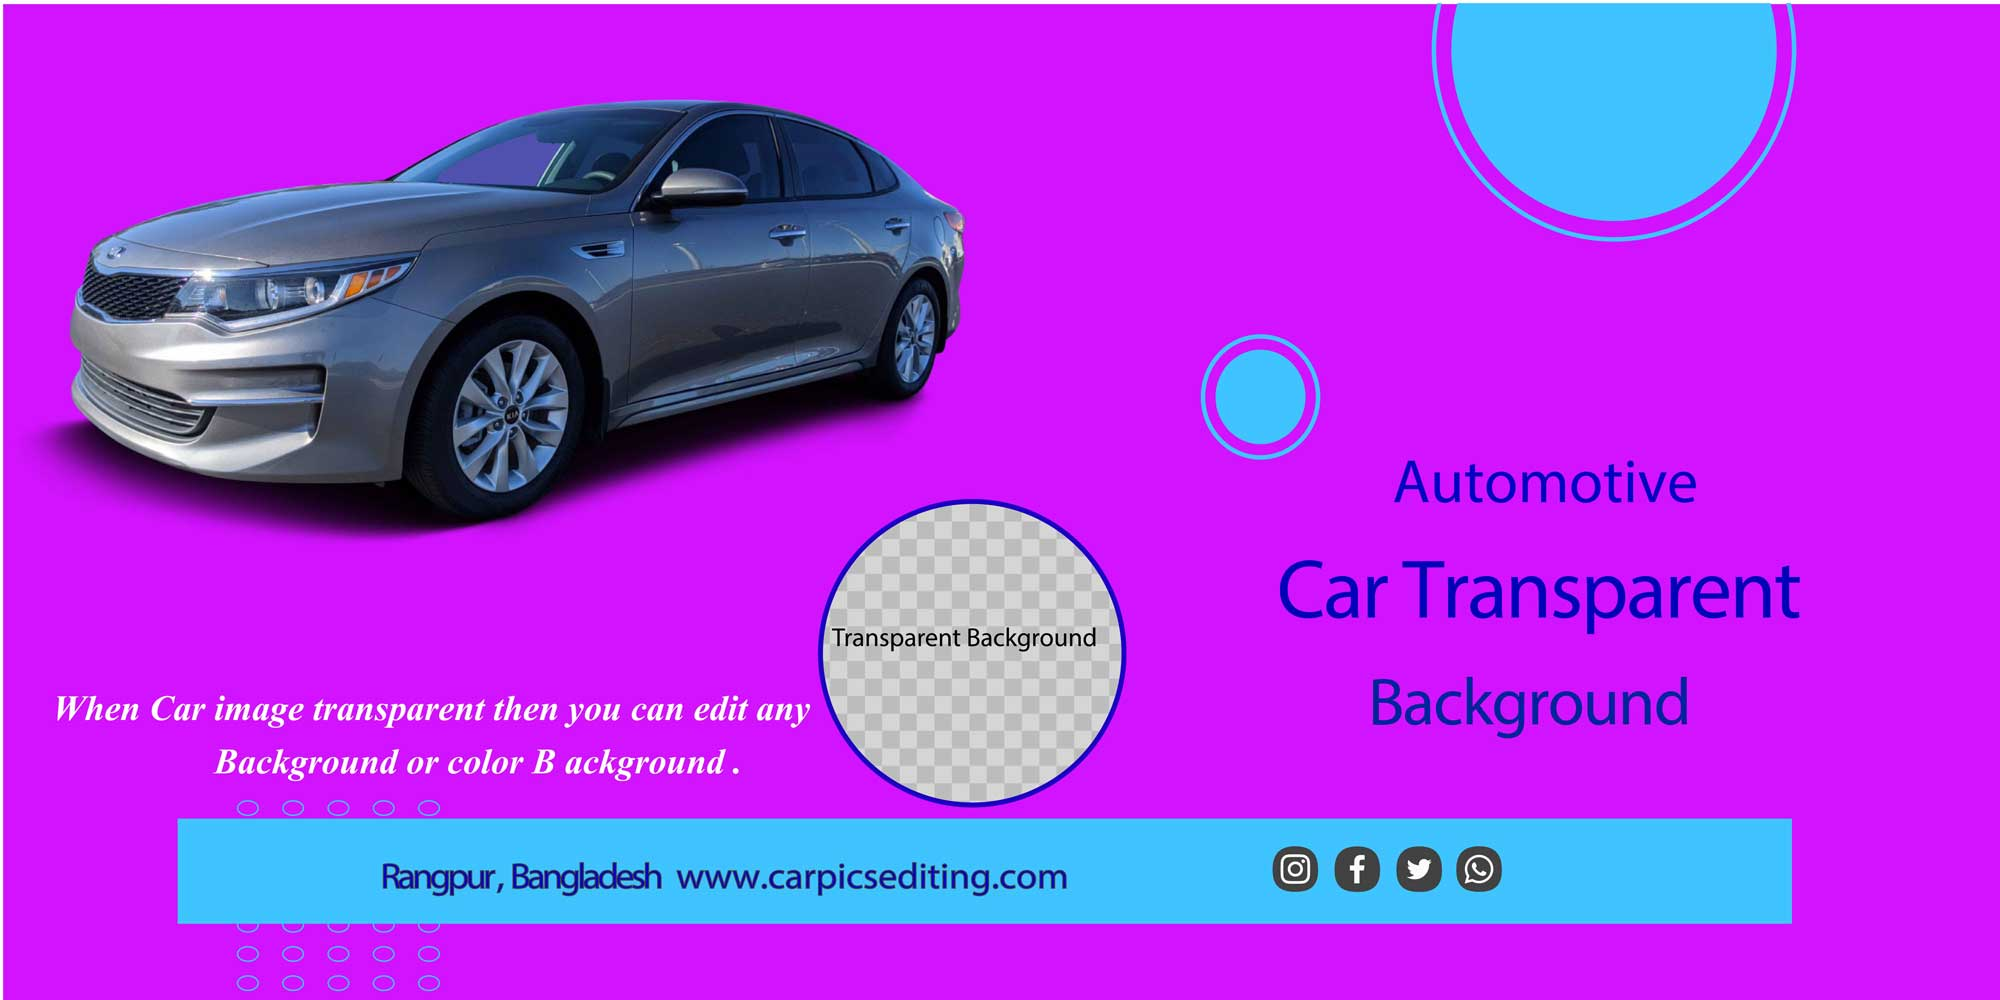 Super Easy Ways to Handle Your Car Transparent Background 3